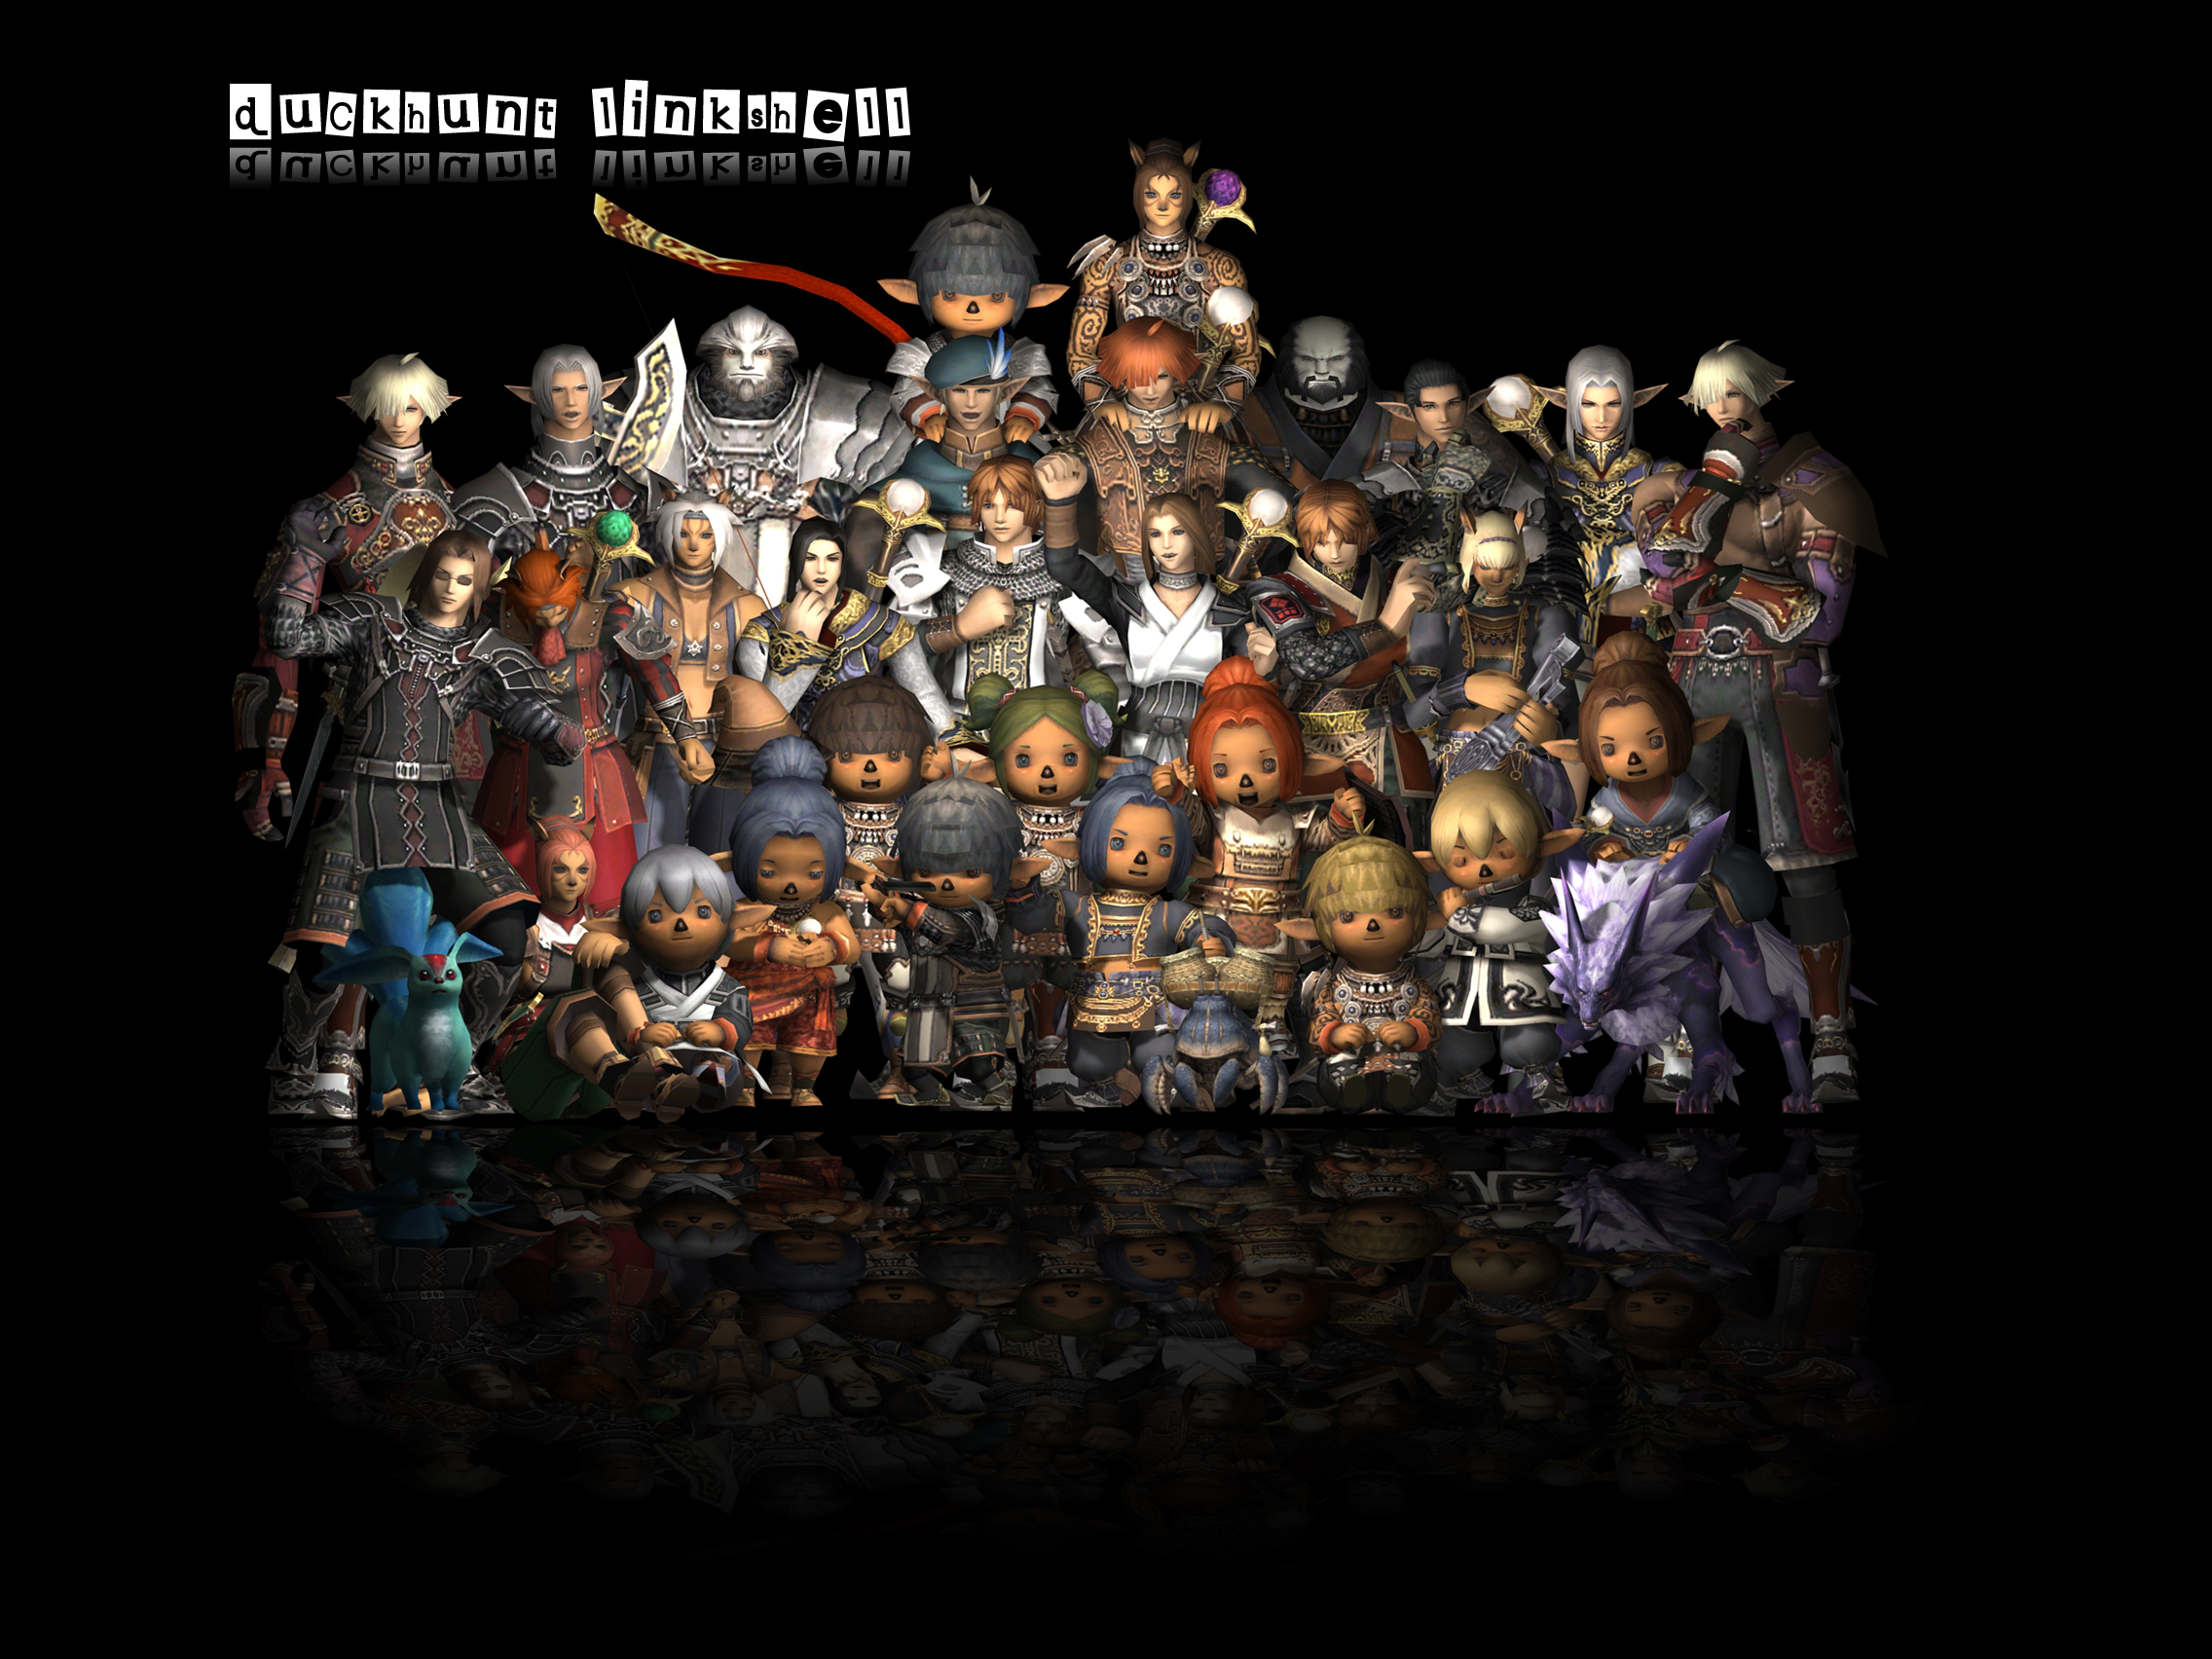 3ds, FFXI Linkshell Group Picture, Autodesk Rendering, Fenrir DuckHUNT